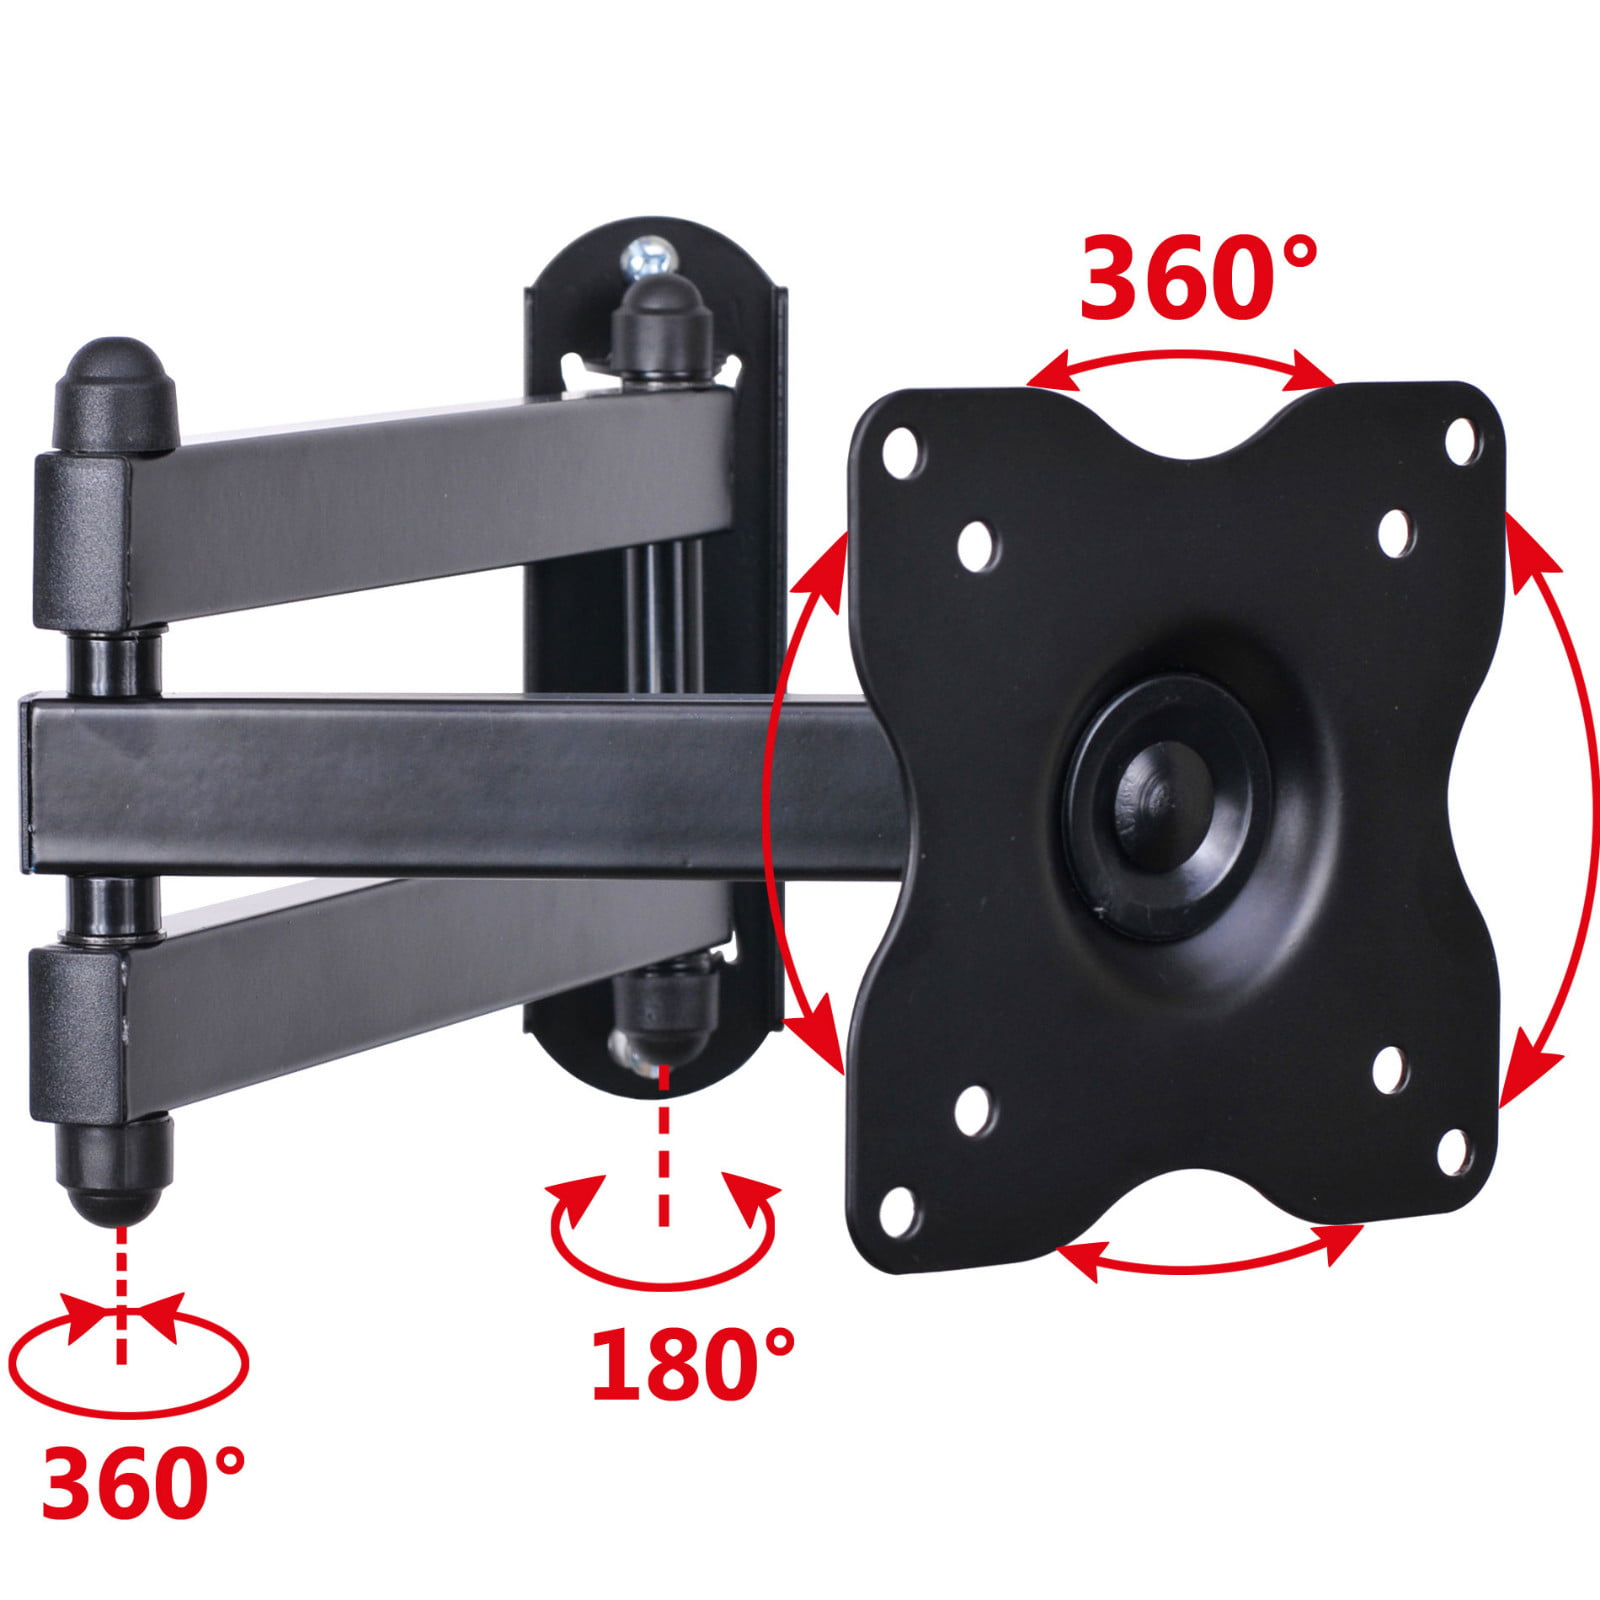 VideoSecu Articulating Full Motion Tilt Swivel TV Wall Mount For Samsung 19  22 24 26 28